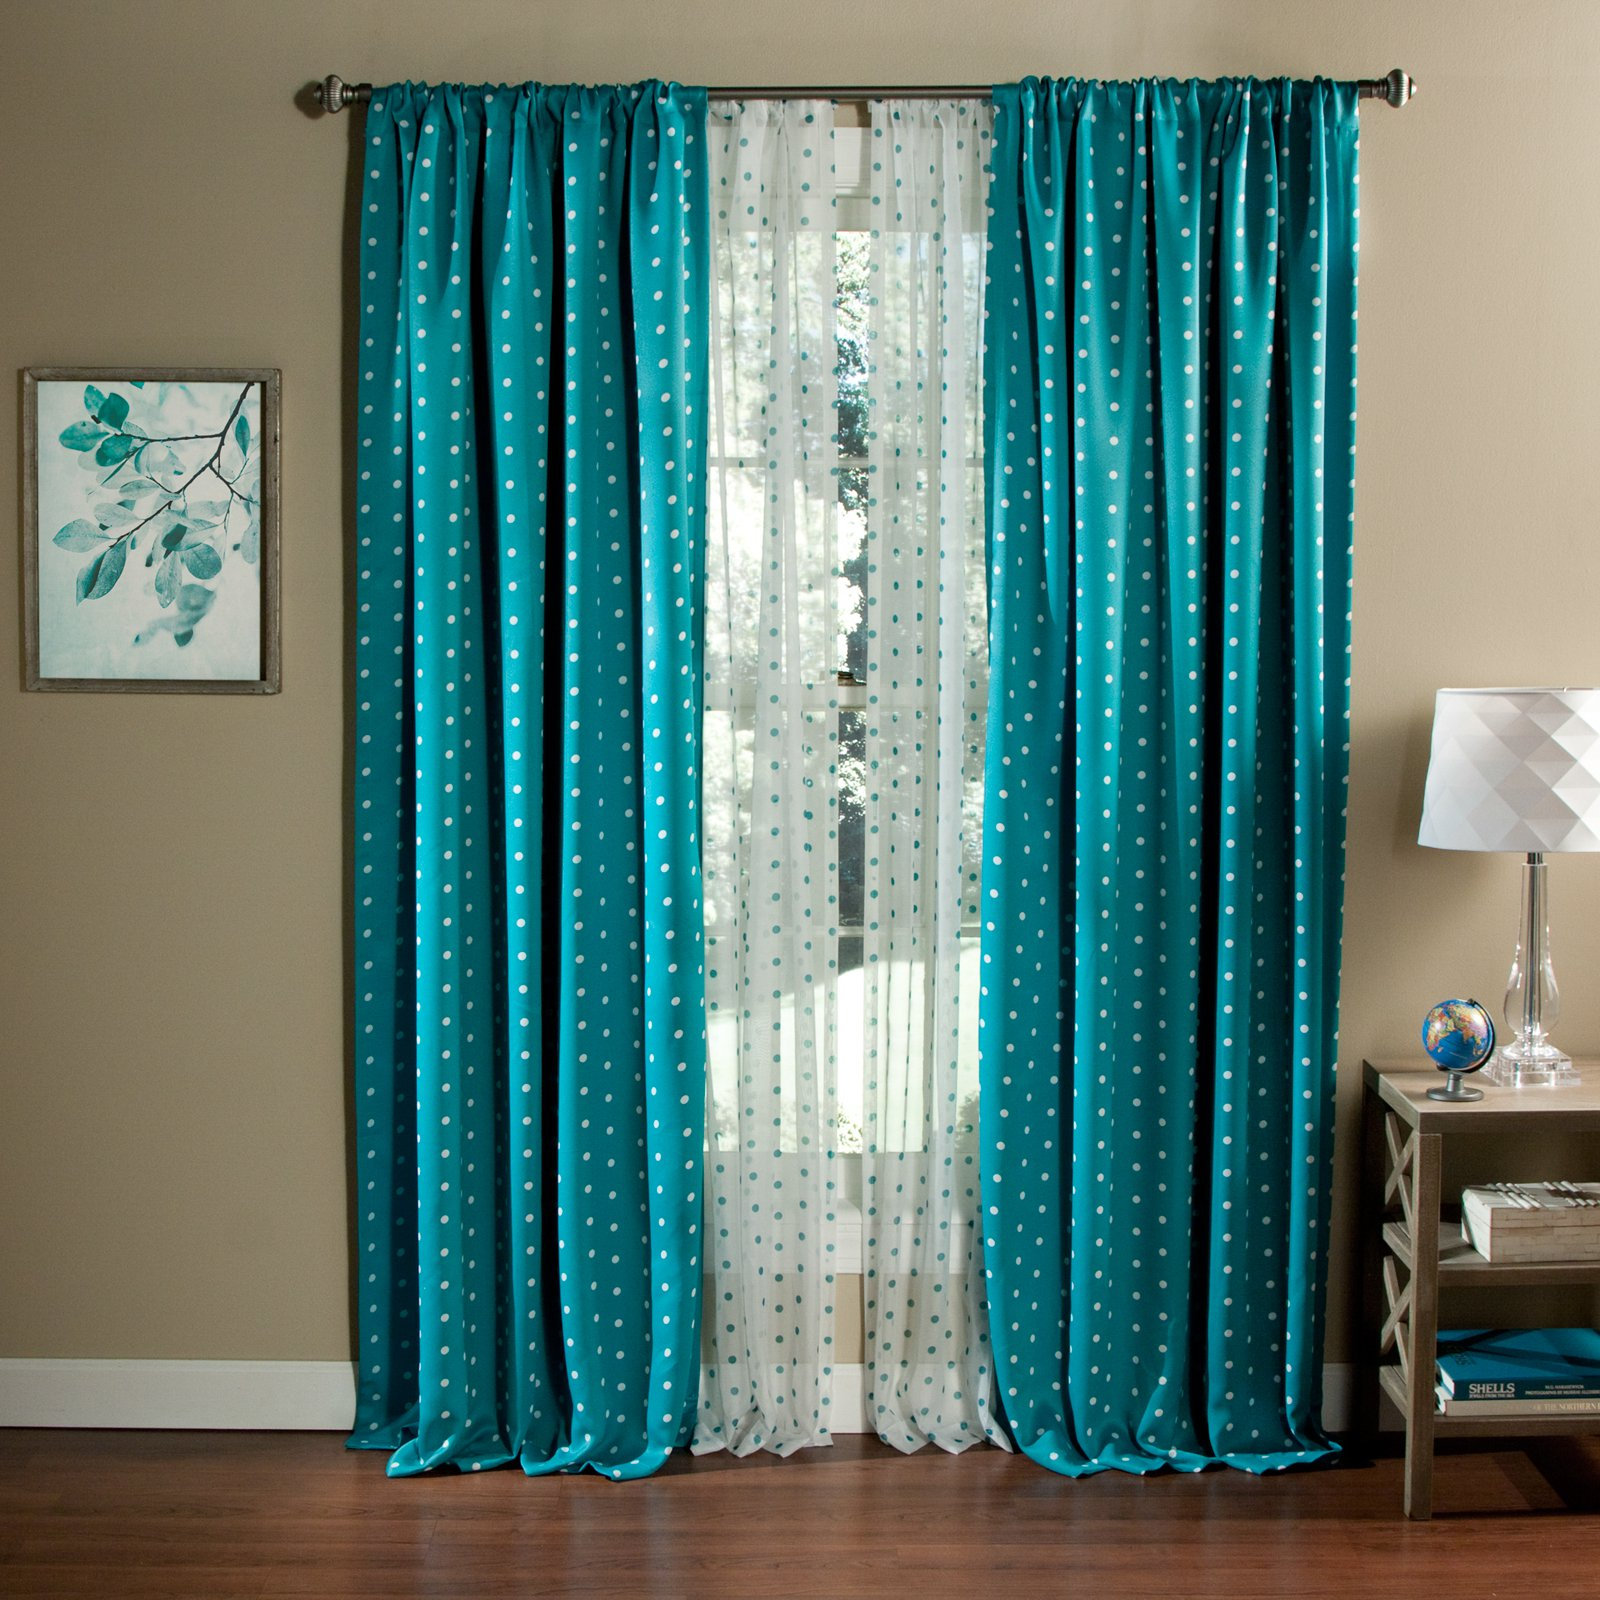 Polka Dots Blackout Curtain Panel, Set Of 2   Walmart.com